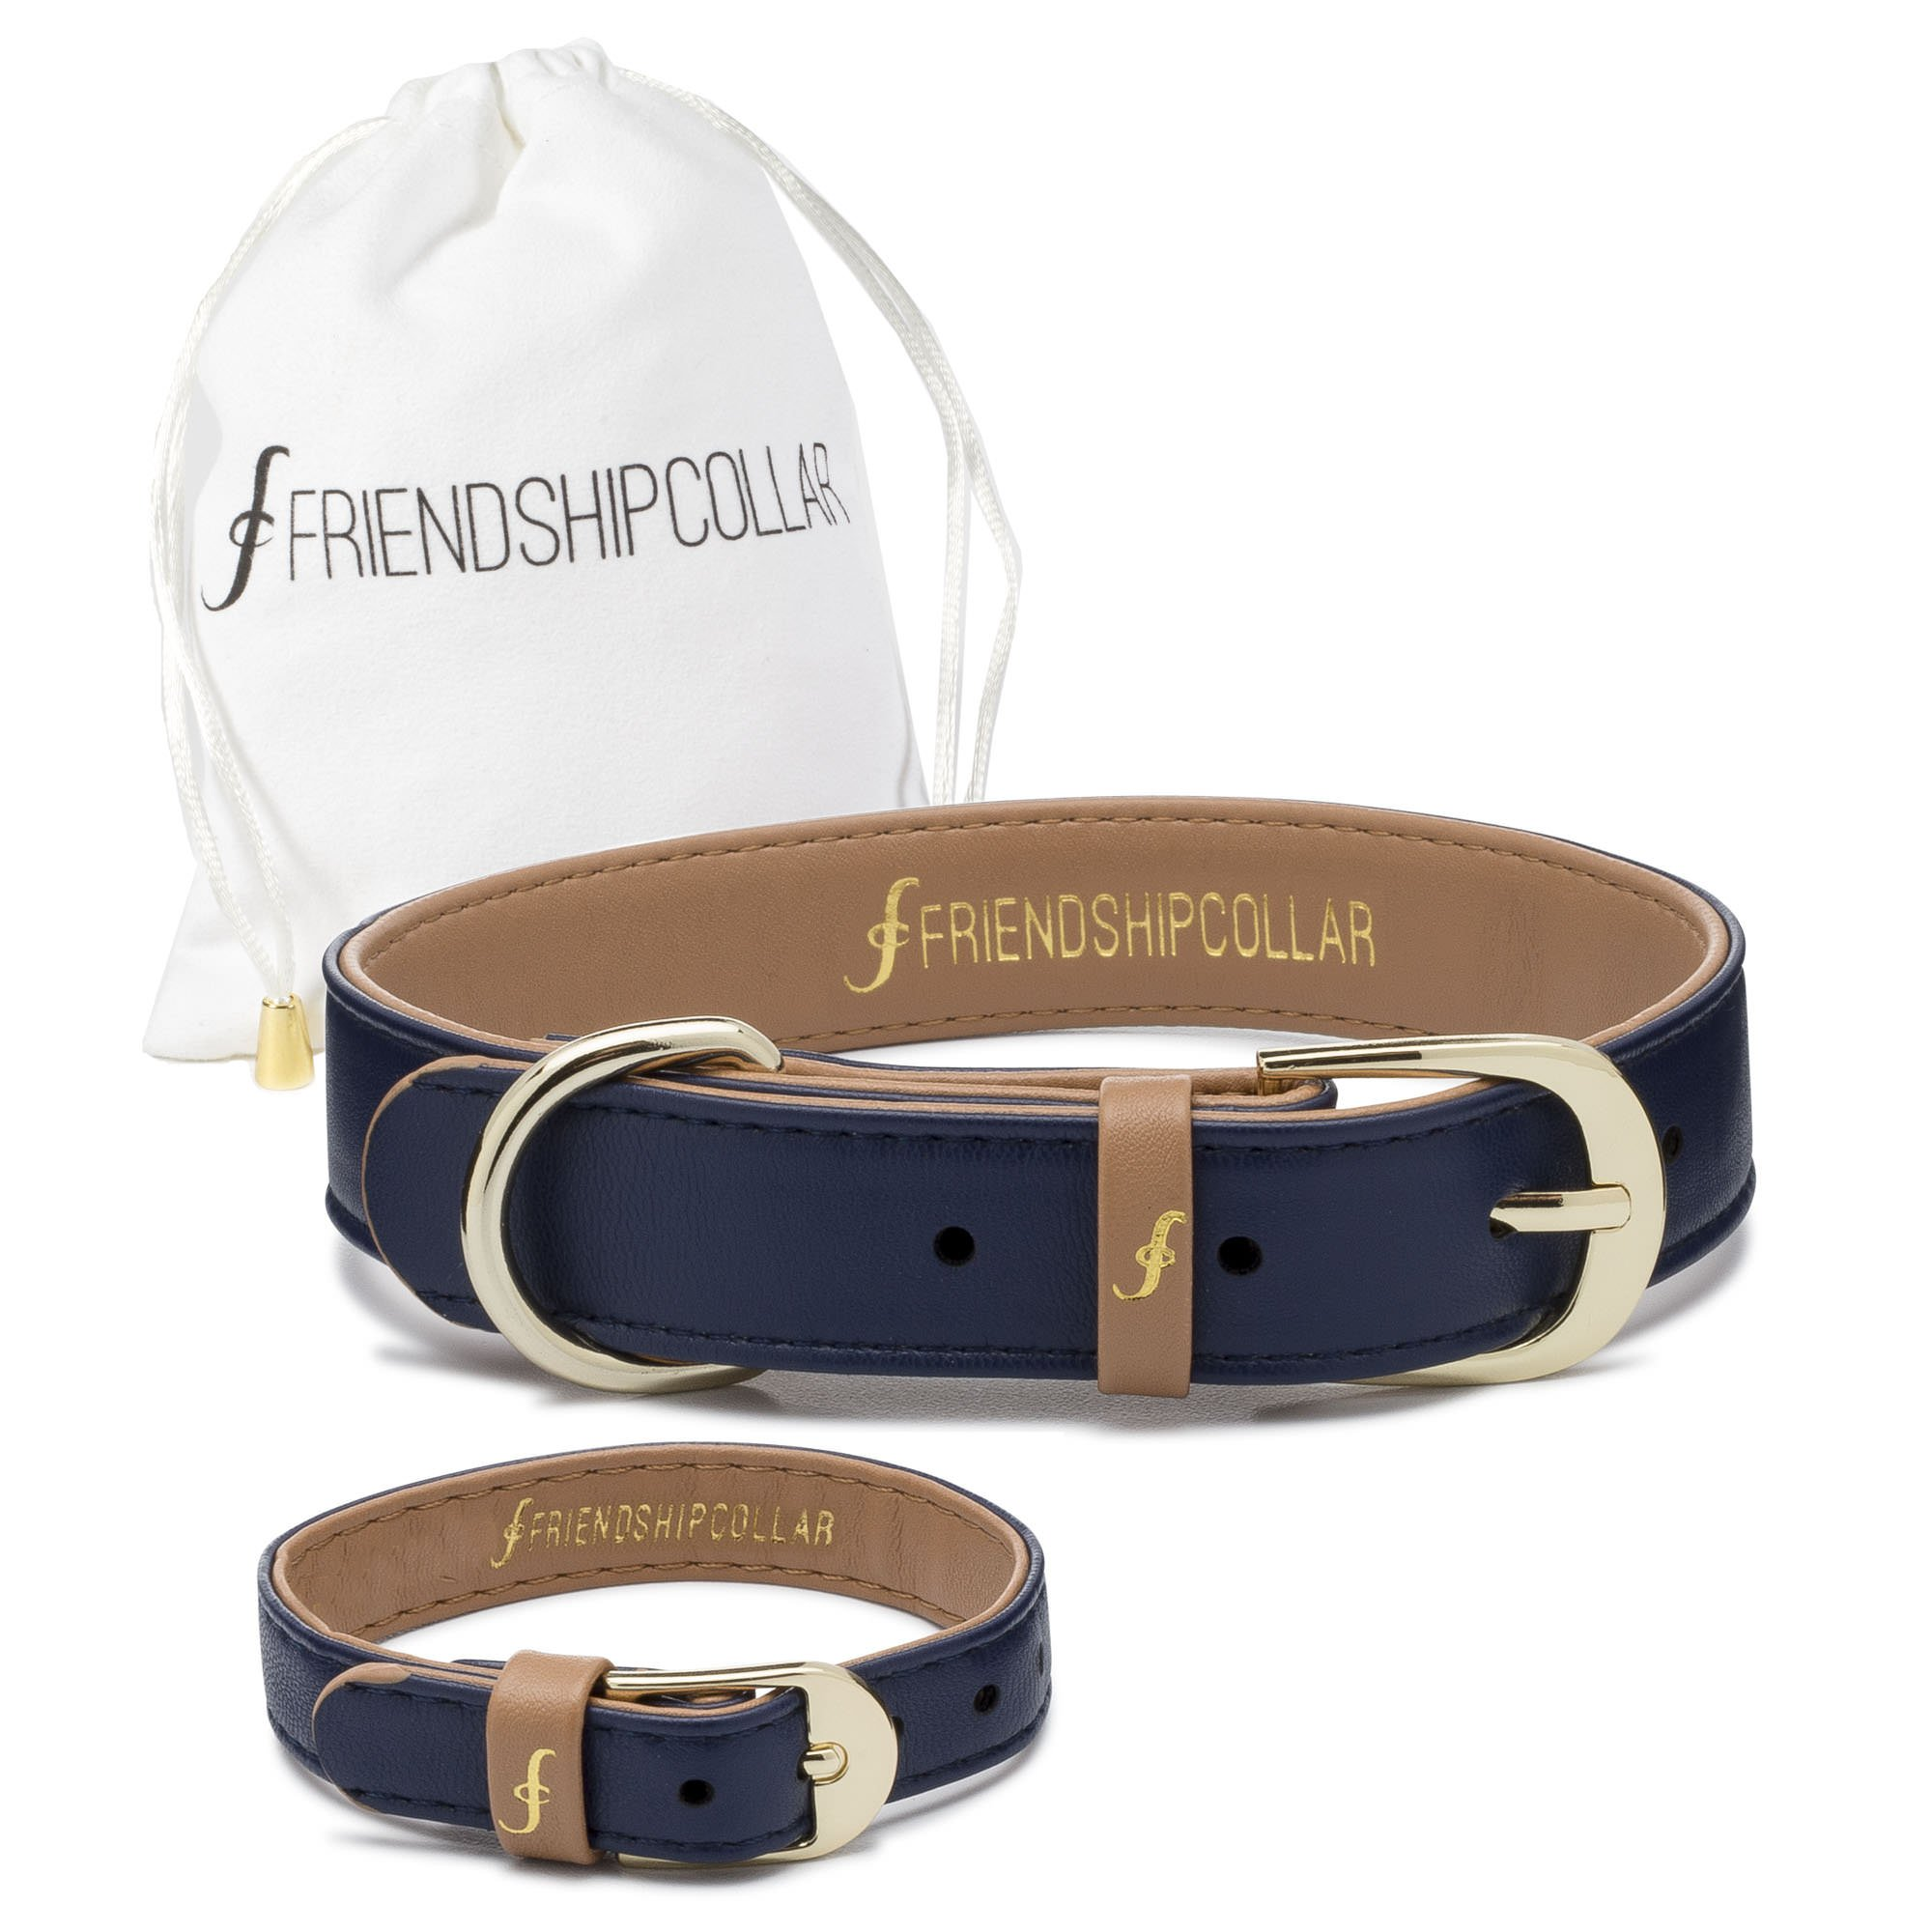 FriendshipCollar Dog Collar and Friendship Bracelet - Monaco Blue - Small